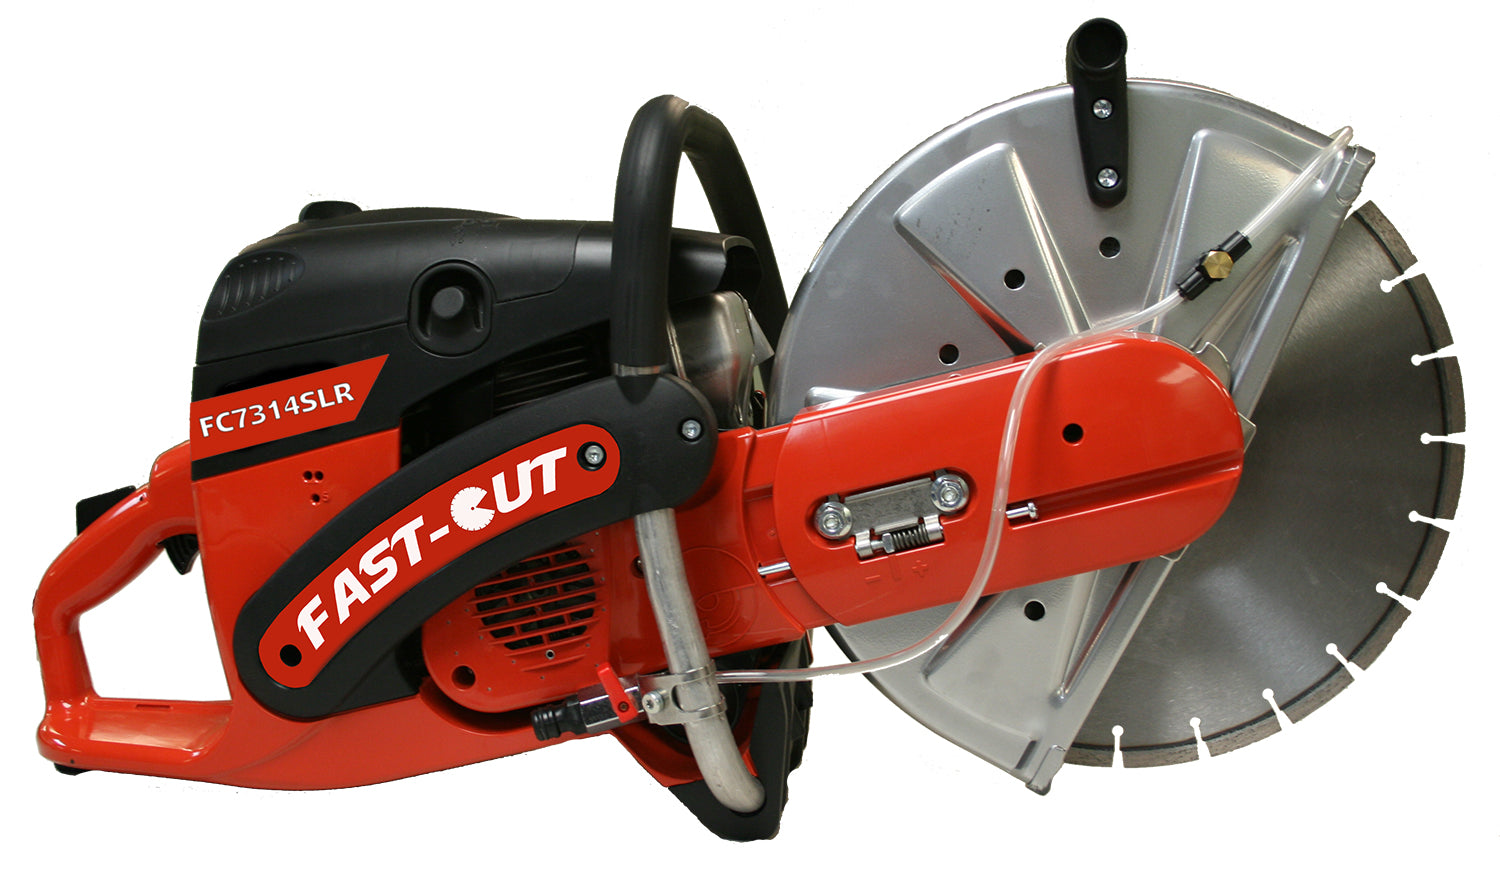 "FC7314, Fast-Cut SLR High Speed Hand Held Saw with 14"" Blade Guard"